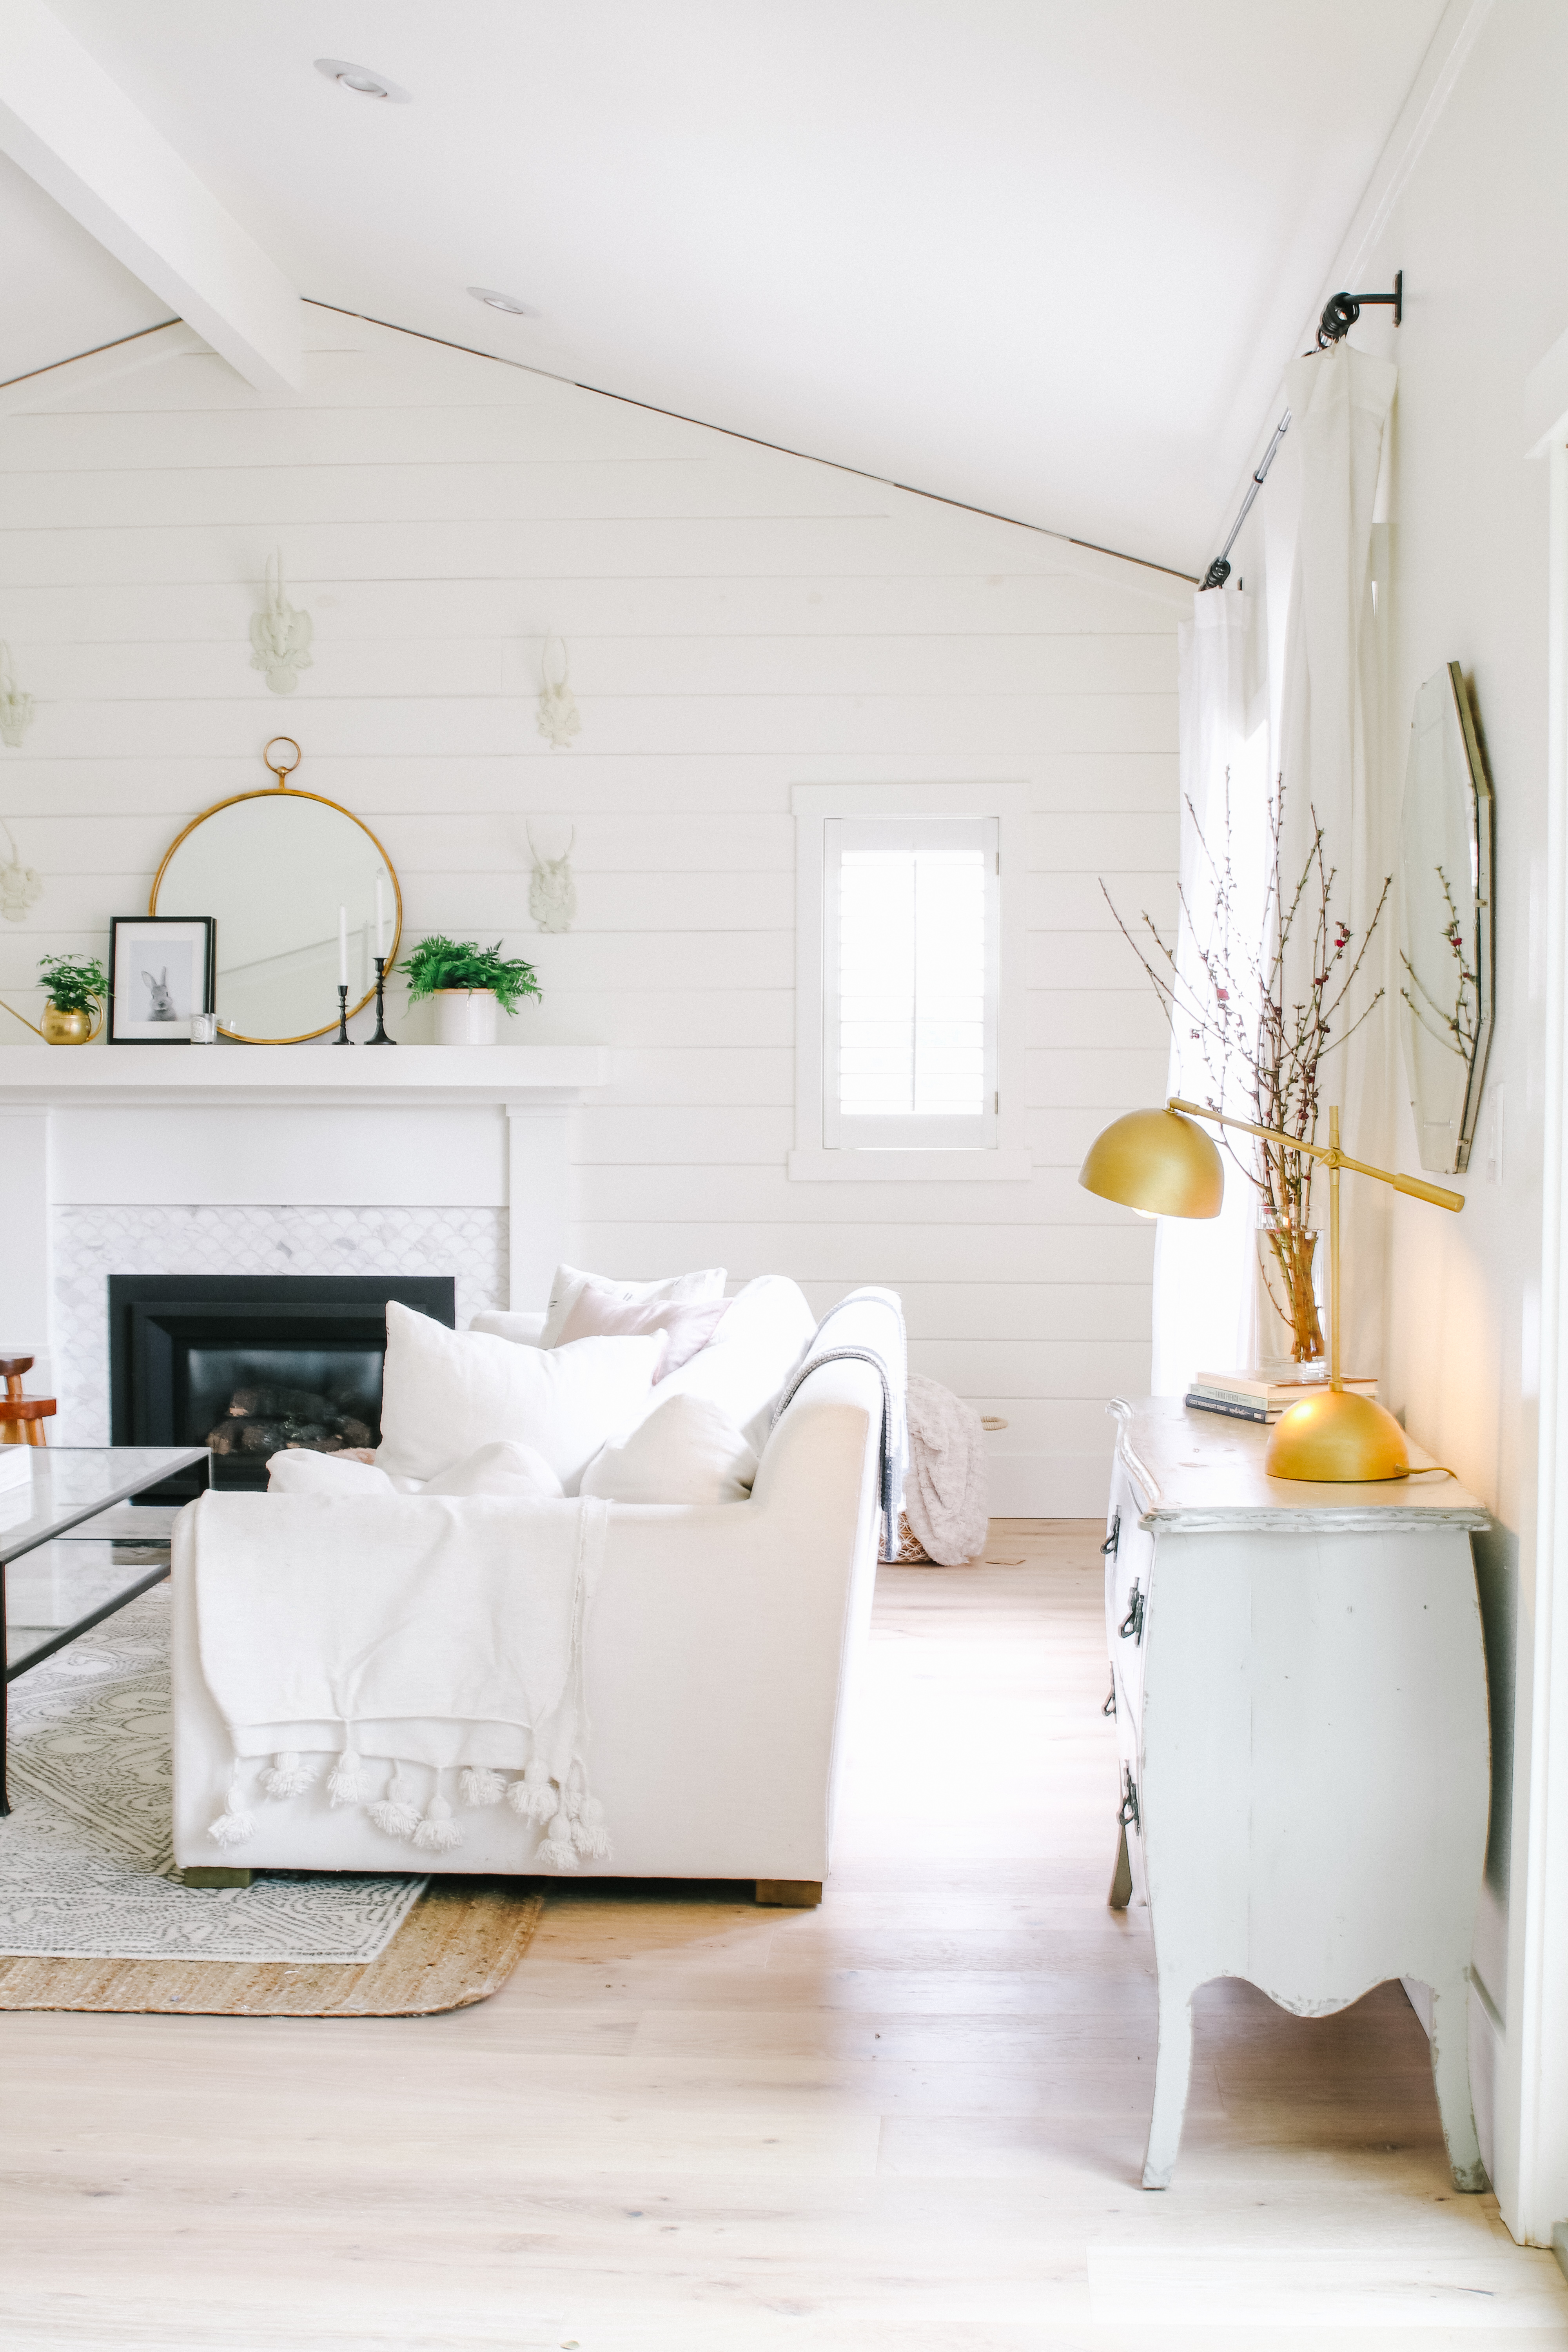 Home decorating ideas for spring. Modern Farmhouse decor ideas